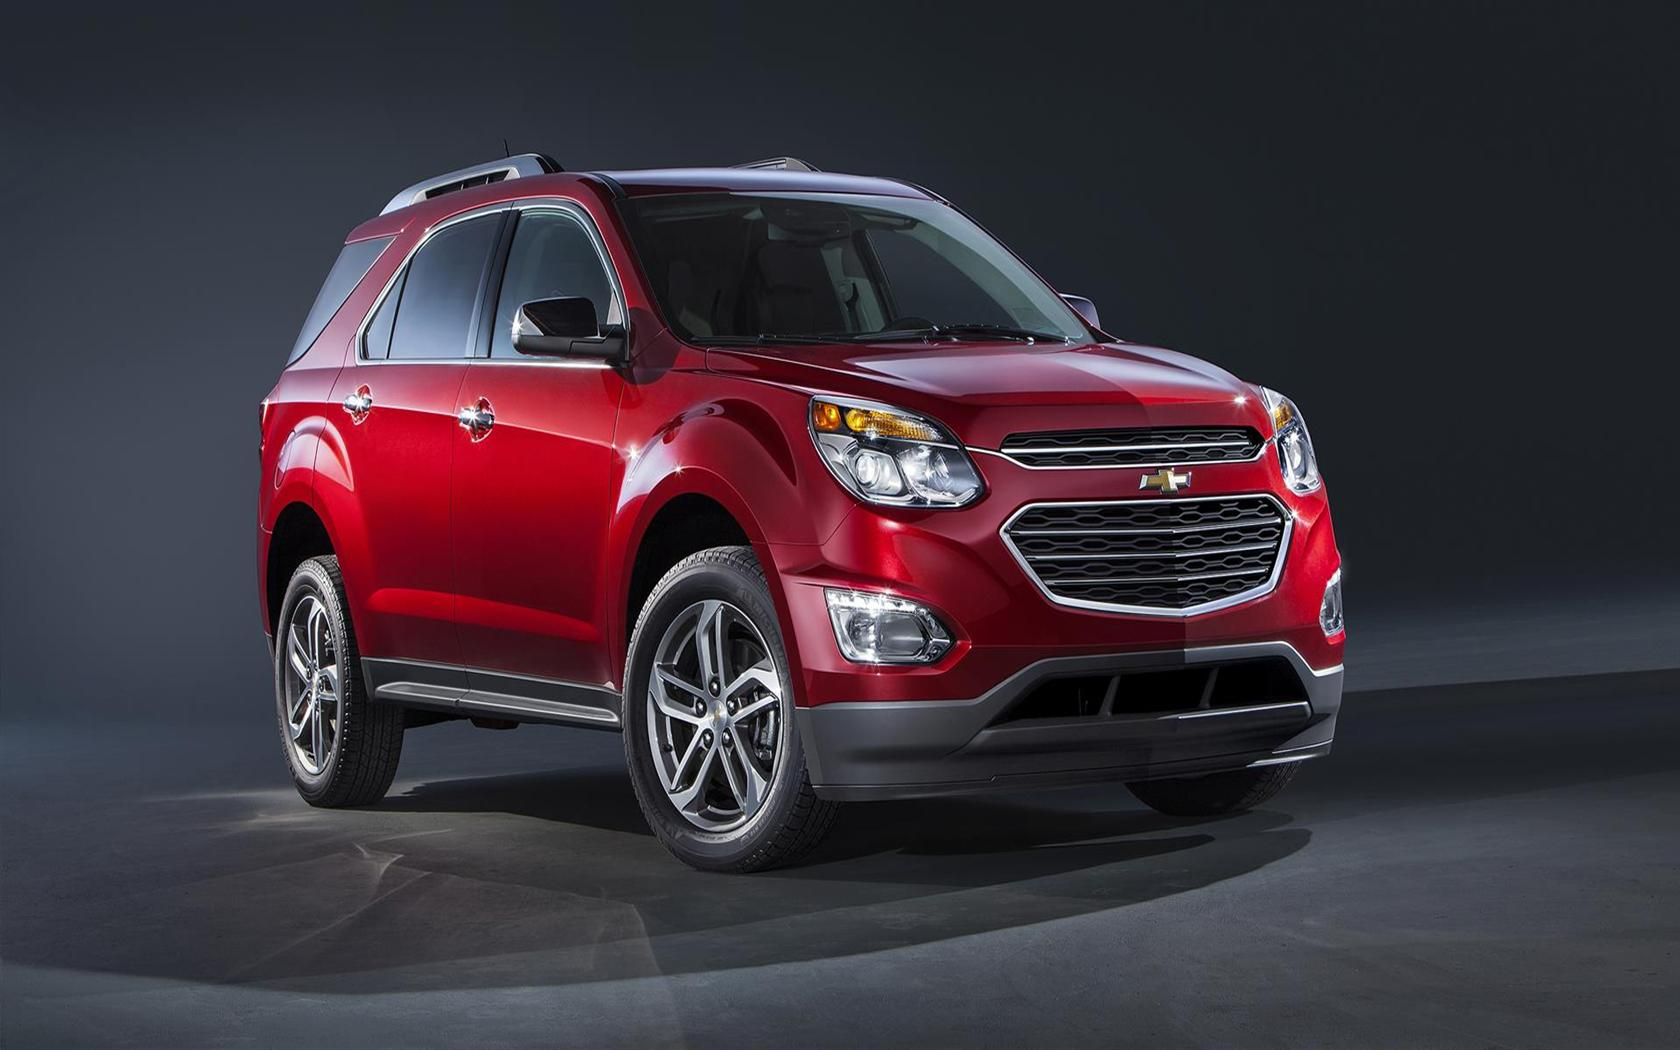 2016 chevrolet equinox images photo chevy equinox 2016 ltz suv 07. Black Bedroom Furniture Sets. Home Design Ideas